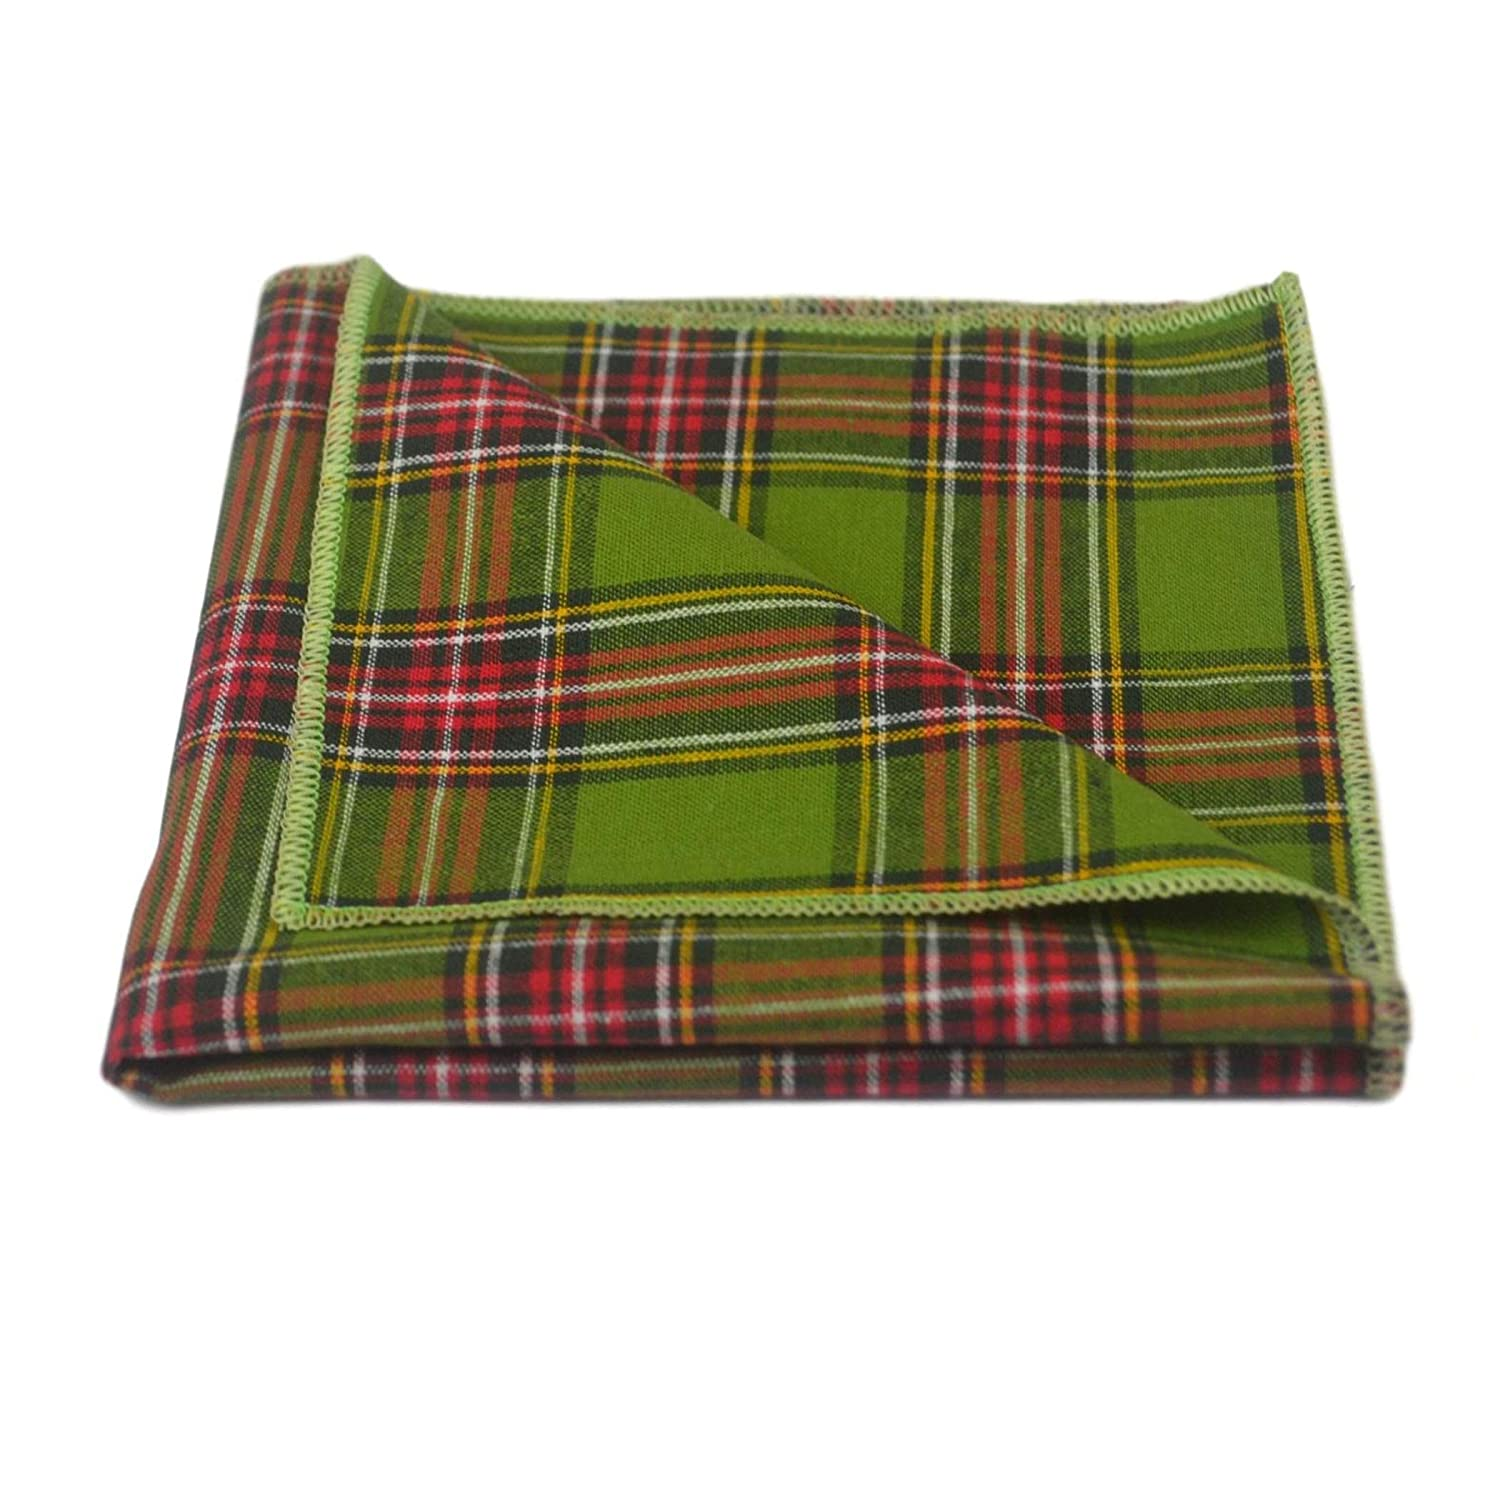 King & Priory Traditional Pochette A Quadri Scozzesi Tartan Verde, Fazzoletto